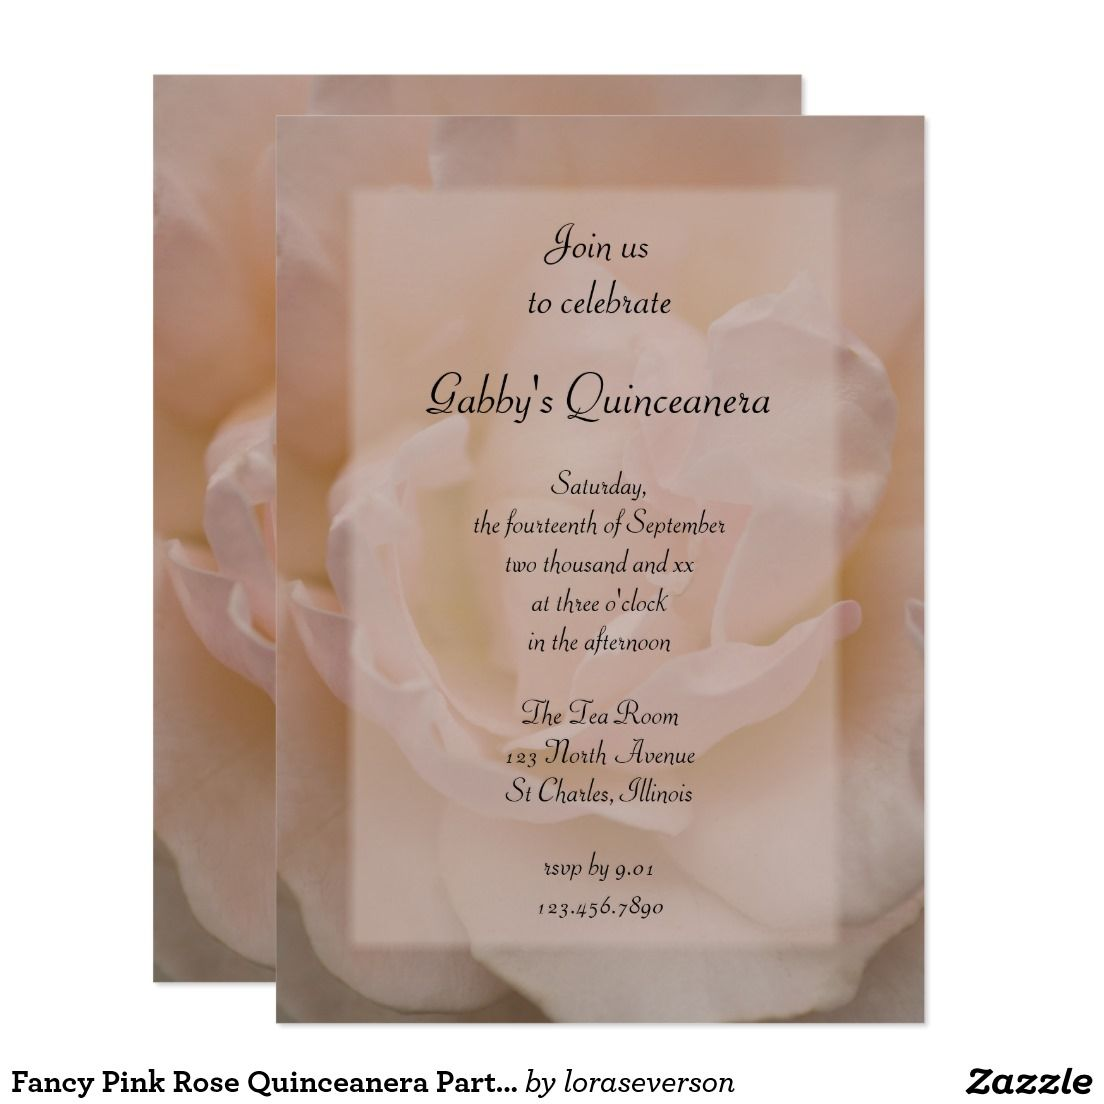 Fancy Pink Rose Quinceanera Party Invitation – Fancy Party Invitation